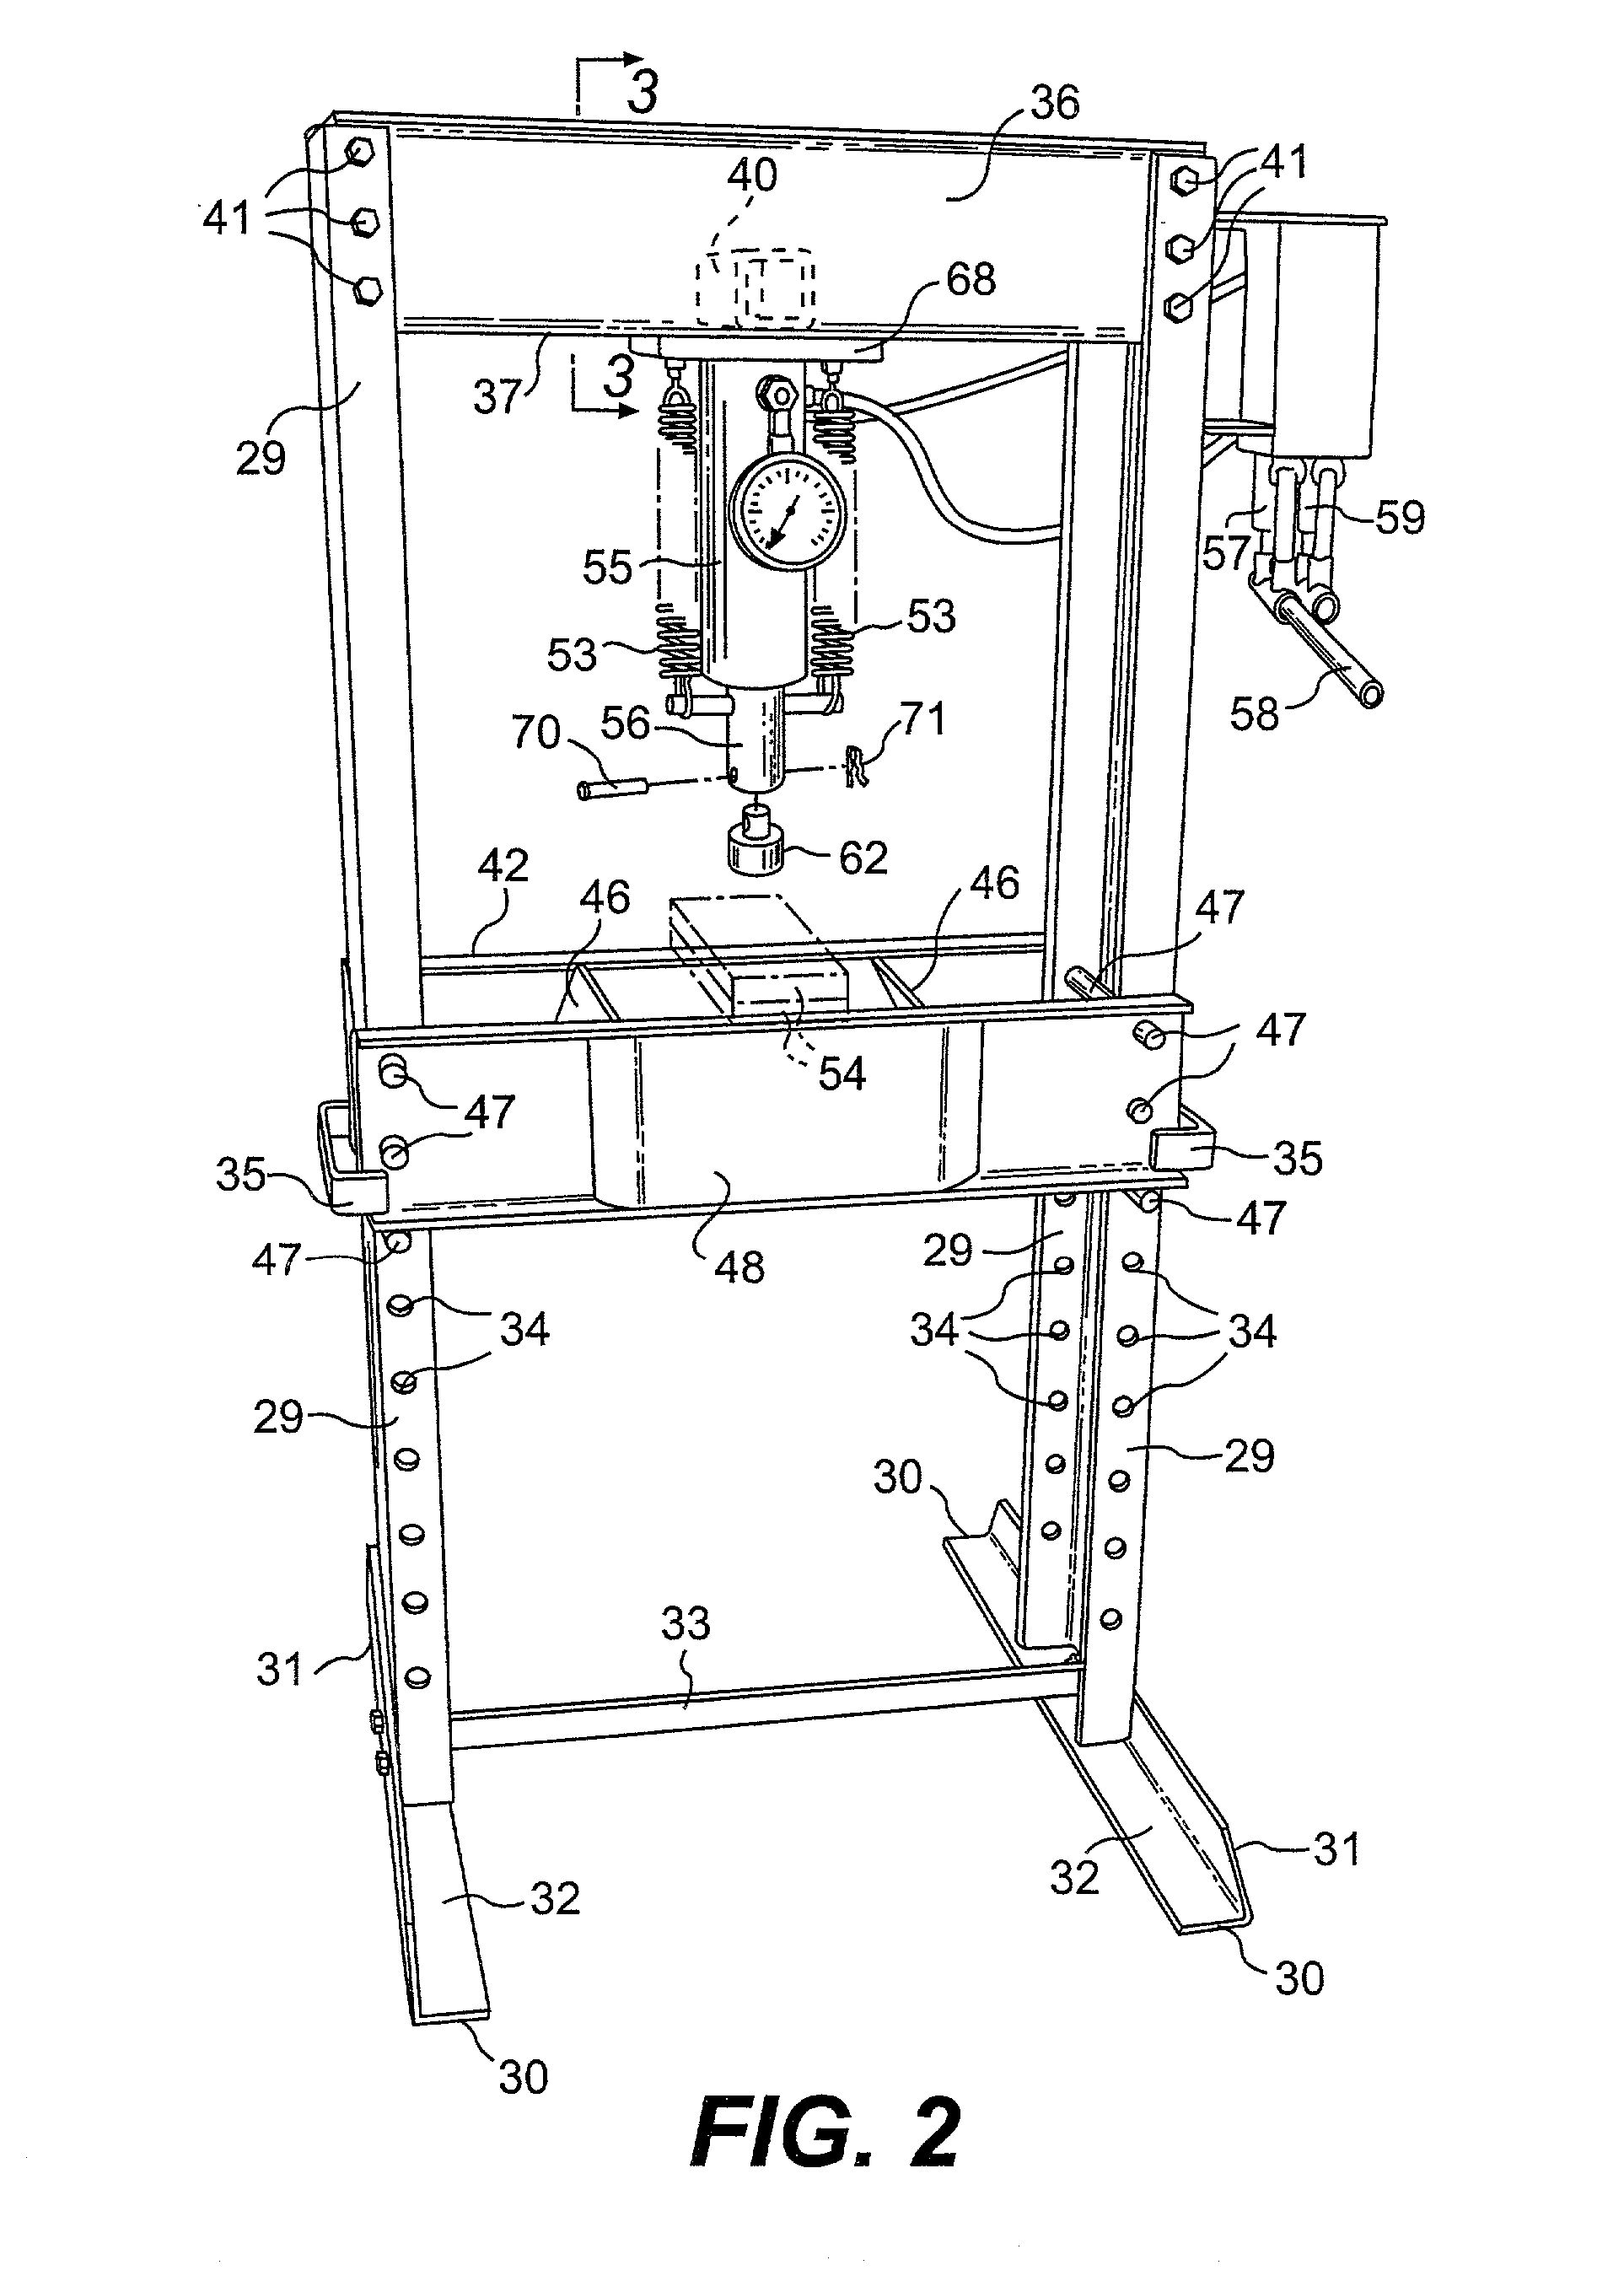 hydraulic press machine diagram 53 wiring diagram today hydraulic press machine diagram 53 [ 1926 x 2718 Pixel ]